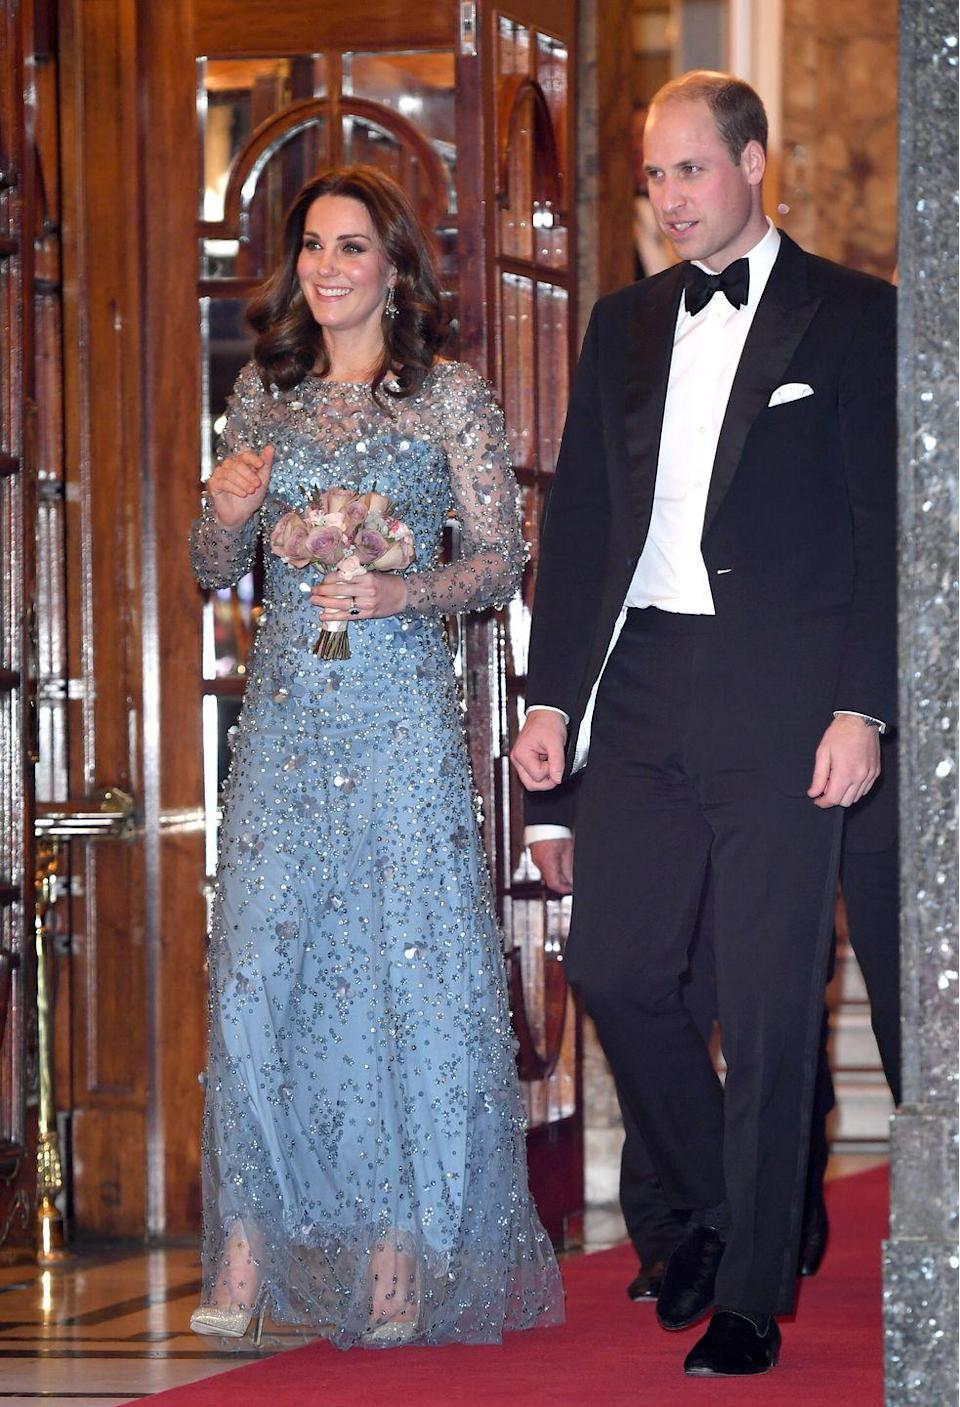 <p>The sheer sleeves and sweetheart neckline of this icy blue Jenny Packham gown makes this real-life royal look a lot like Elsa at an event at London's Palladium Theatre in November 2017.</p>